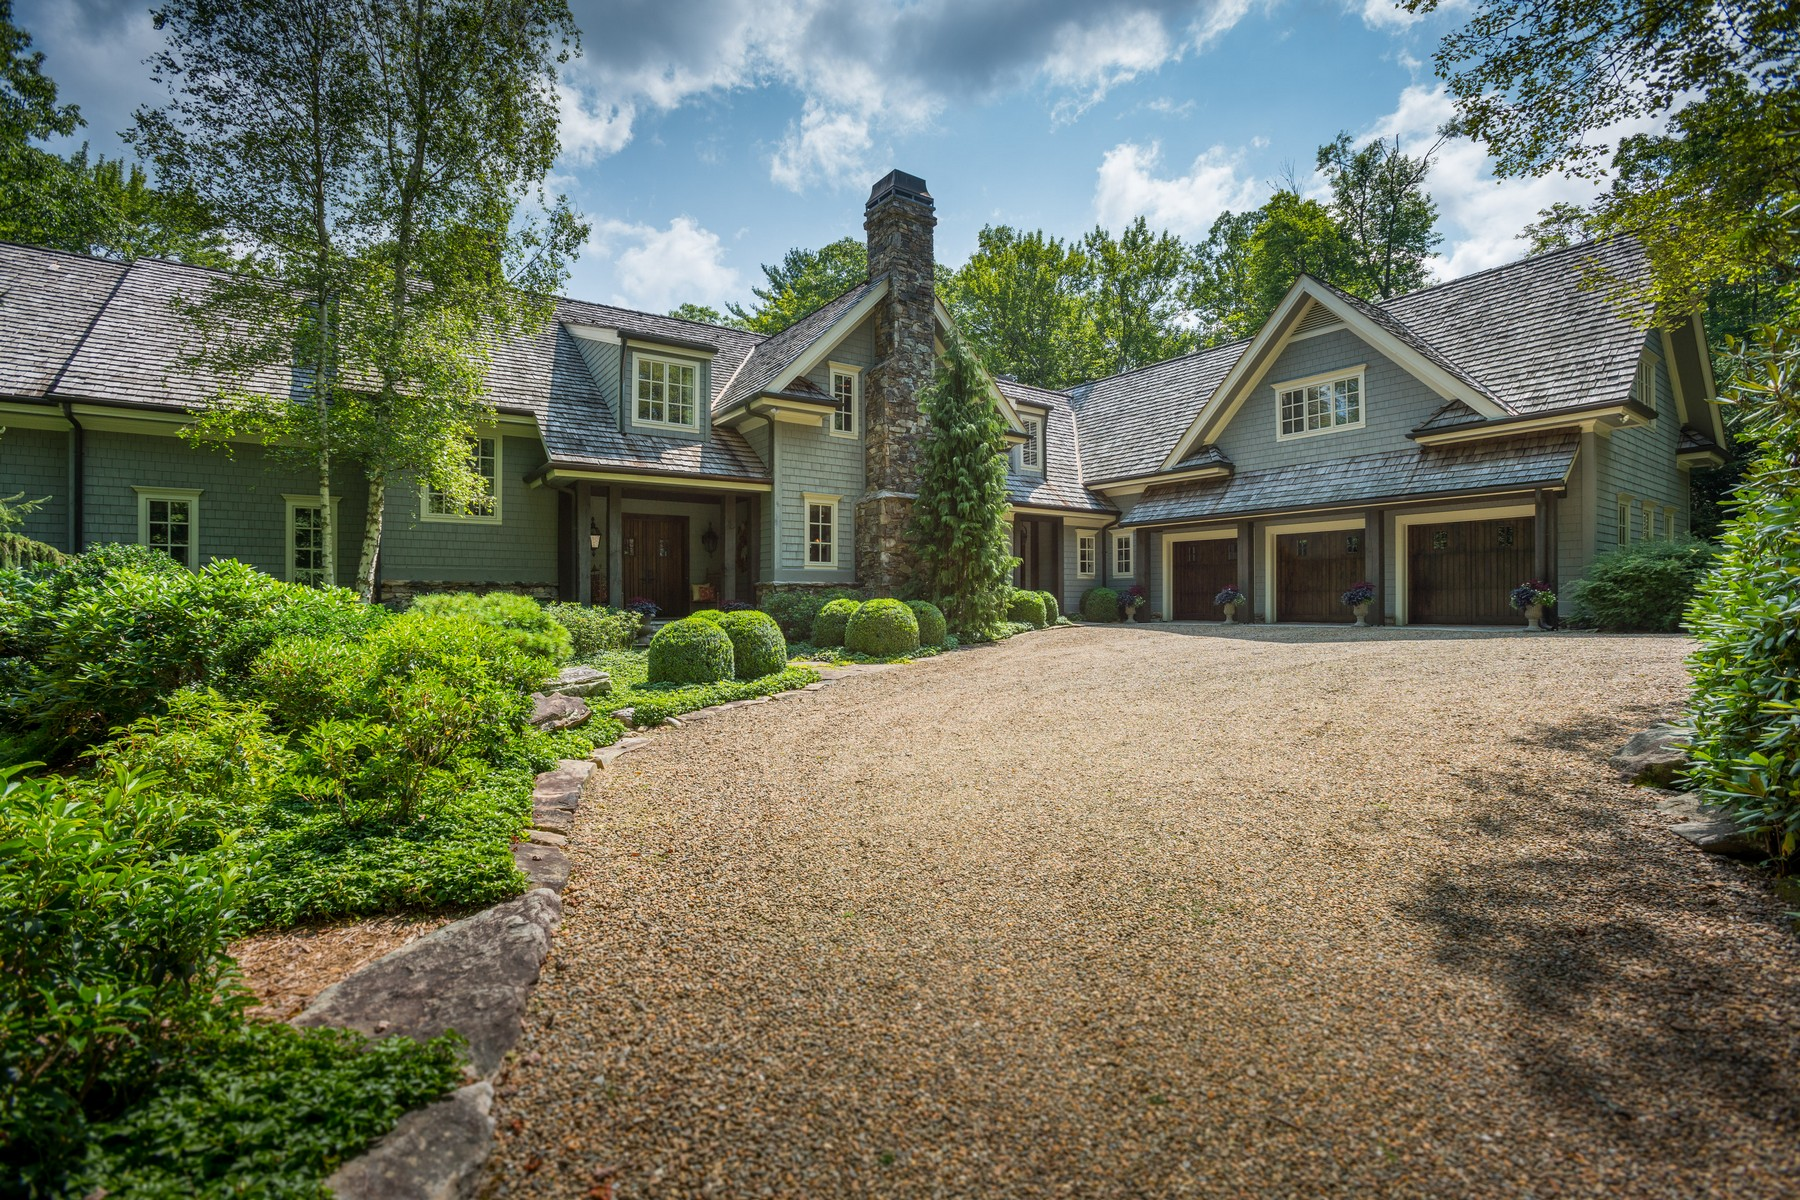 Single Family Homes for Active at 227 Sage Woods Drive 227 Sagee Woods Drive Highlands, North Carolina 28741 United States